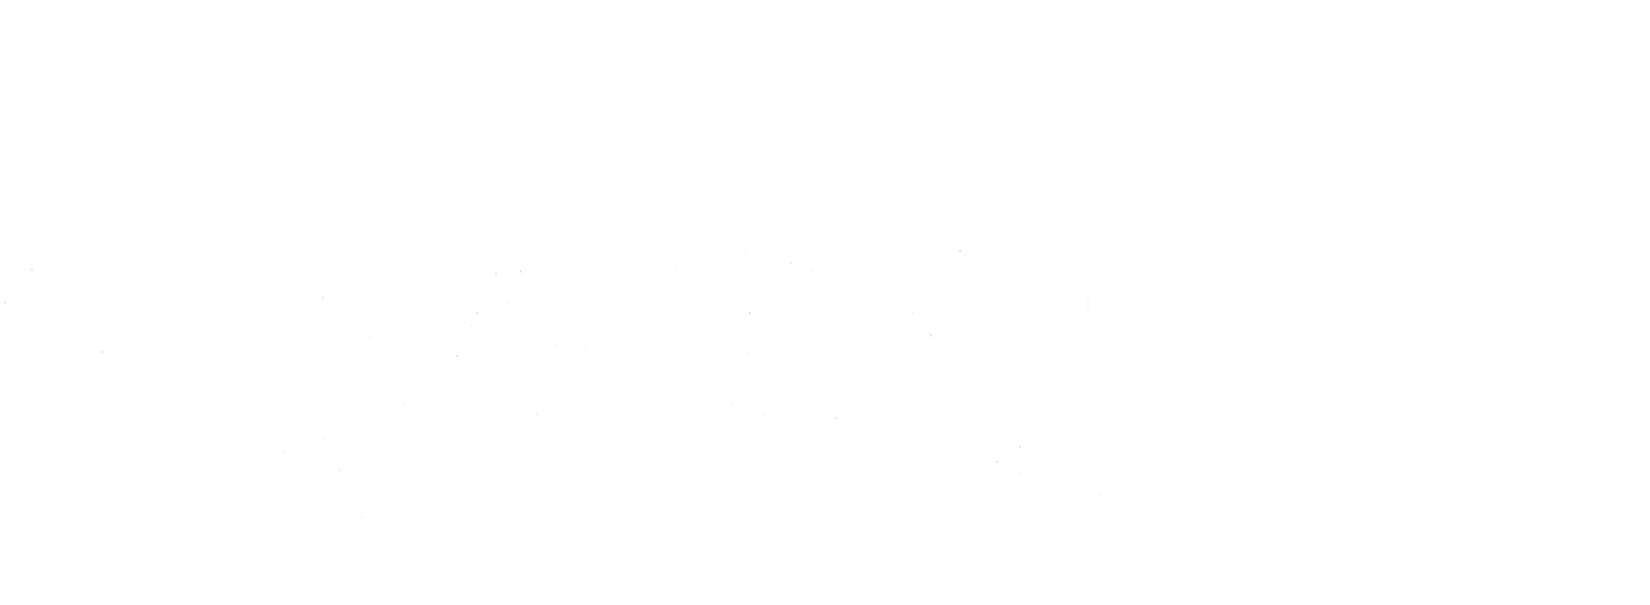 https://www.thisisxyz.com/wp-content/uploads/2017/08/Singapore-airlines-white-logo.png